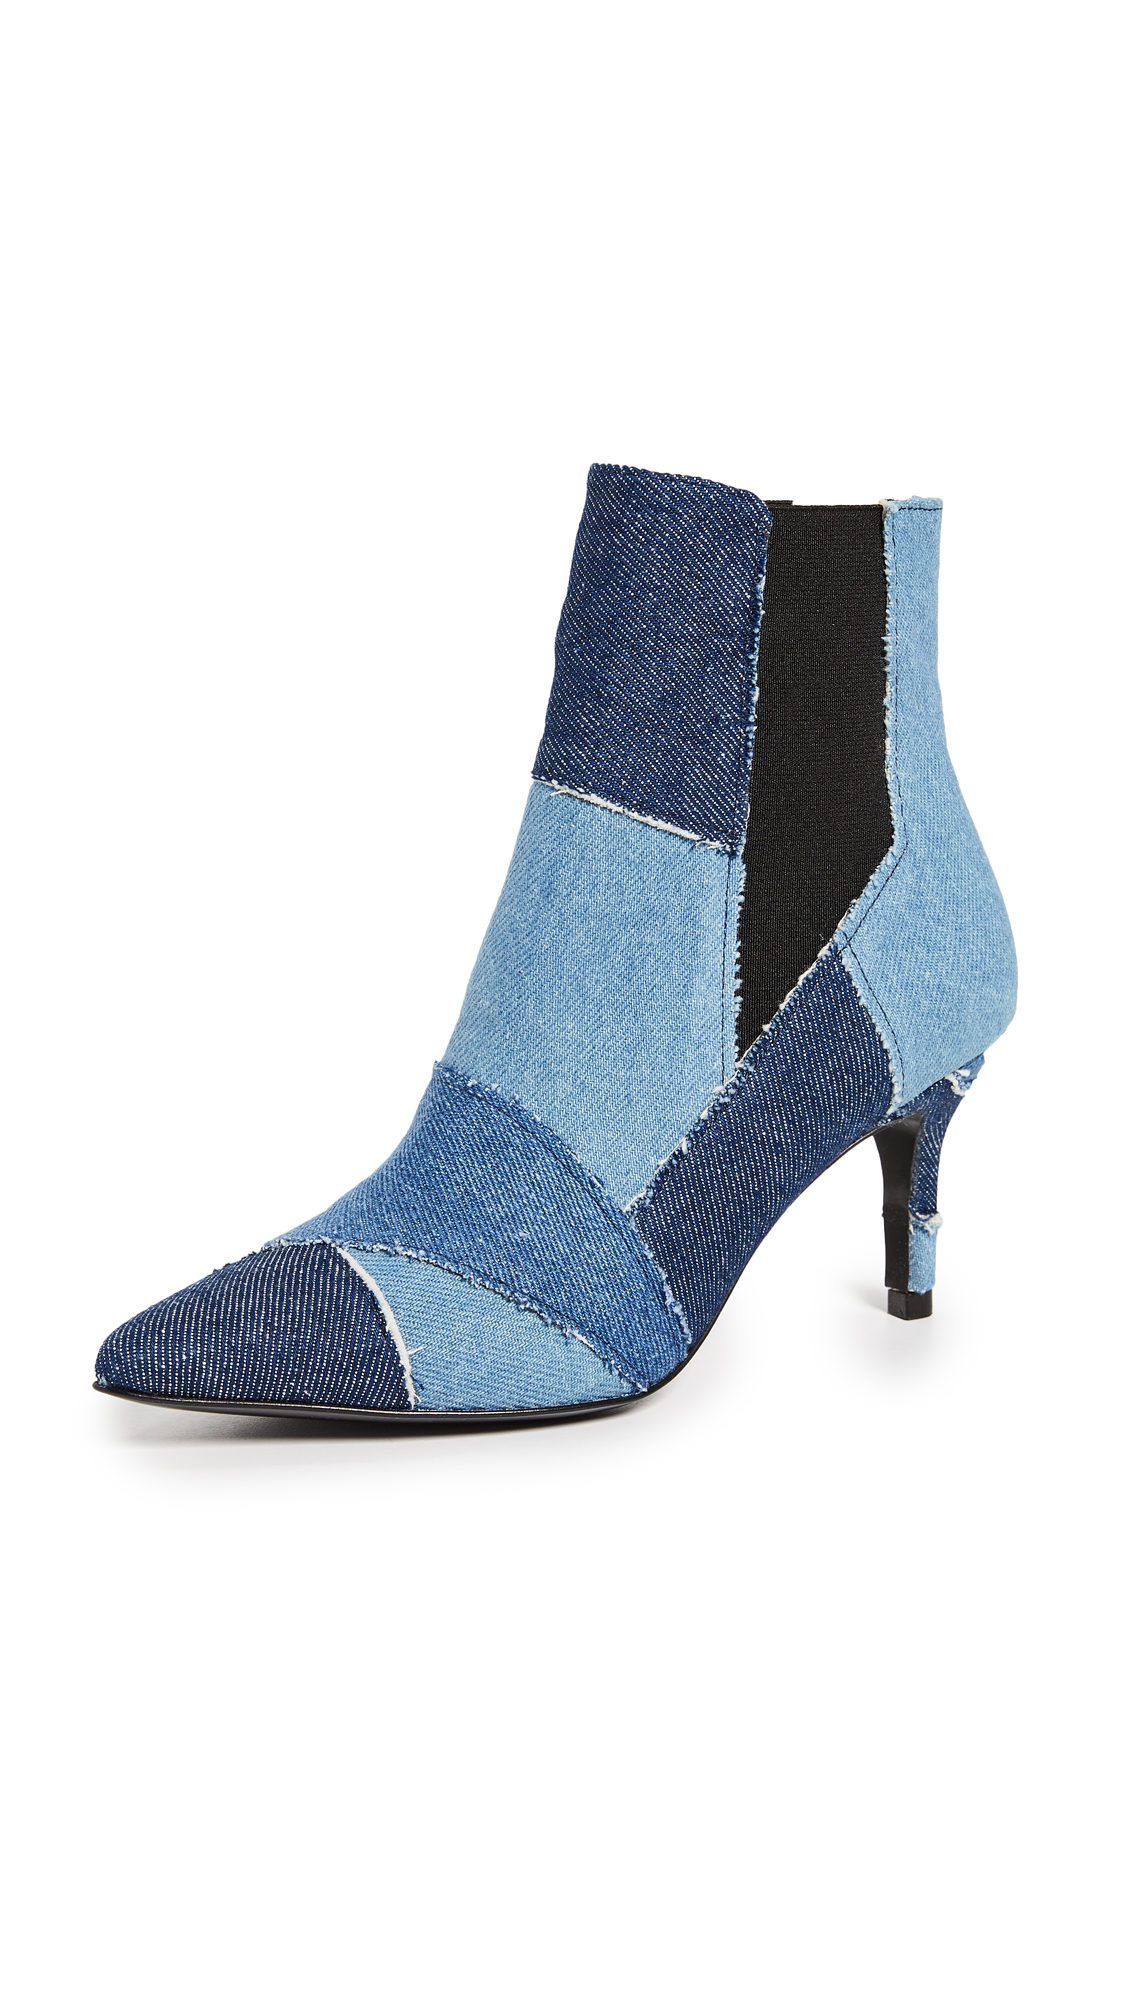 Kalda Caro Patchwork Booties - Multi Denim